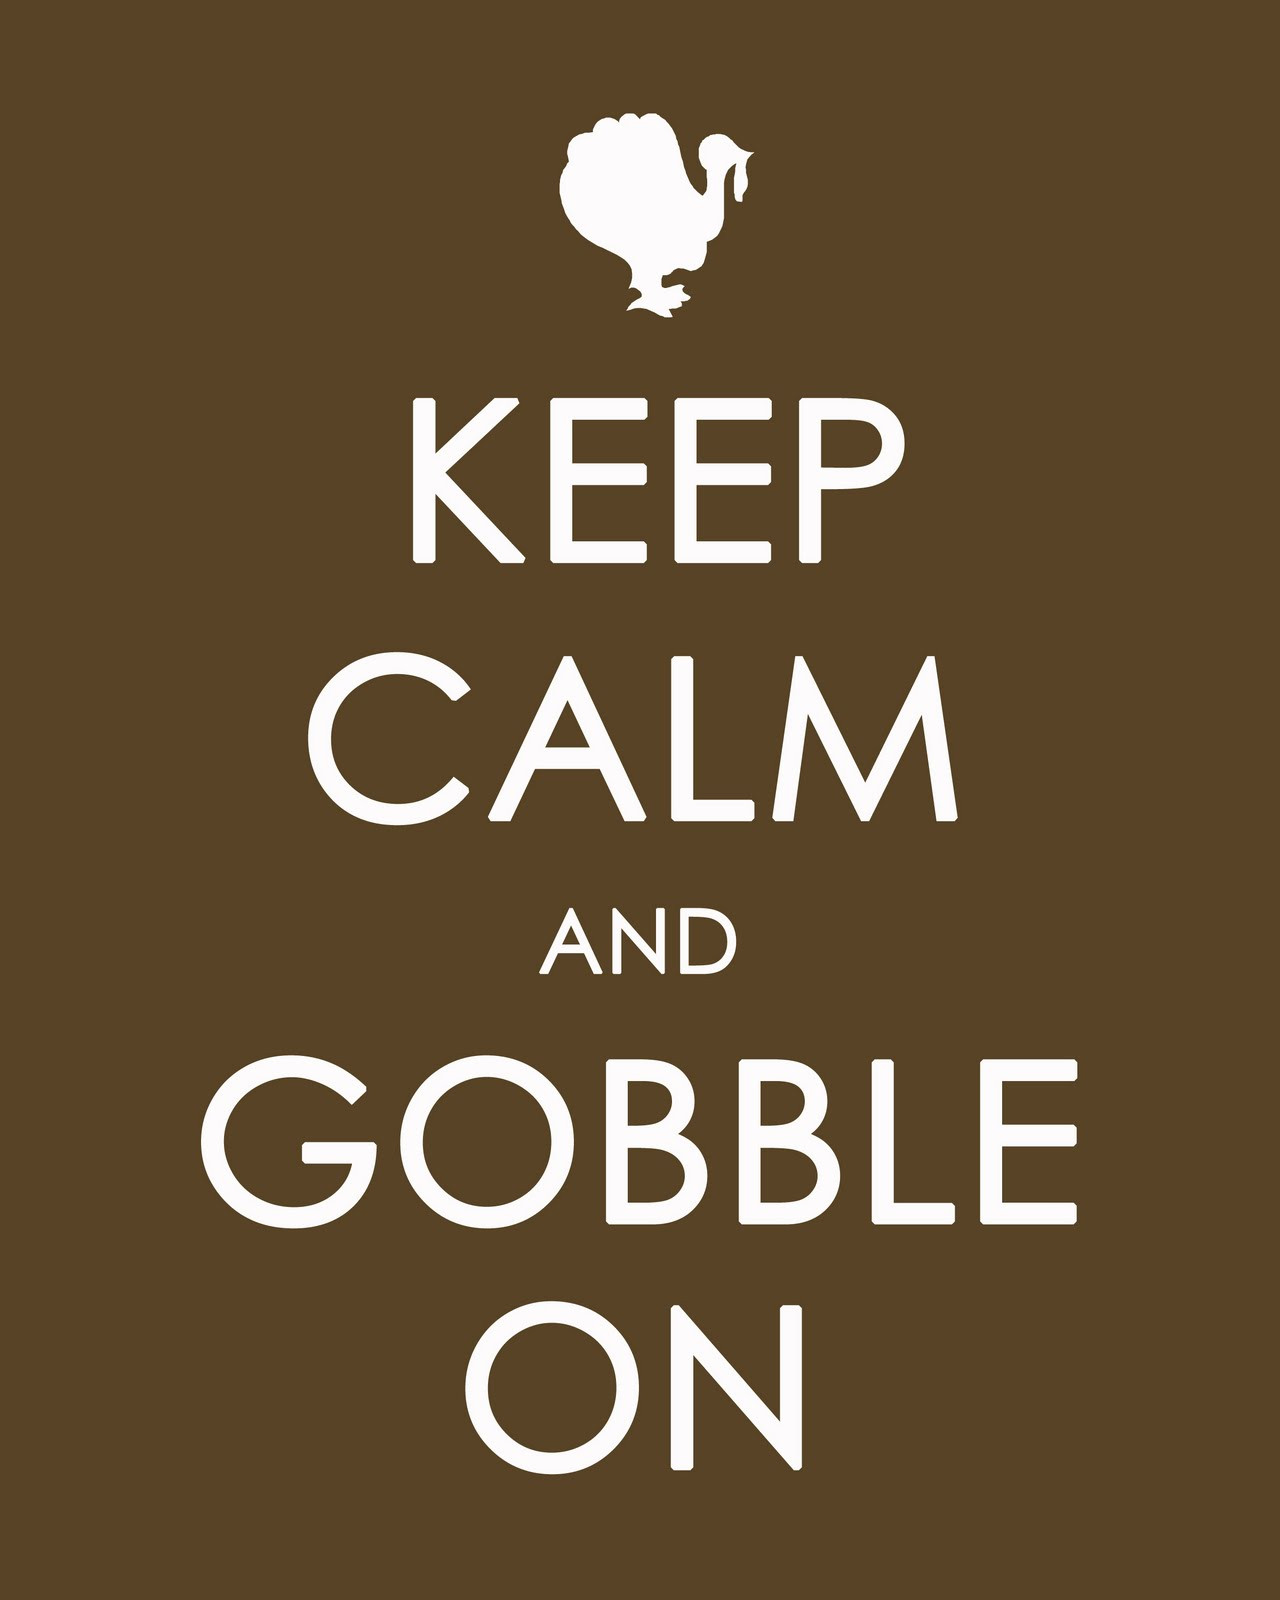 Thanksgiving Turkey Quotes  THE ADVENTURES OF TEAM DANGER Keeping Calm